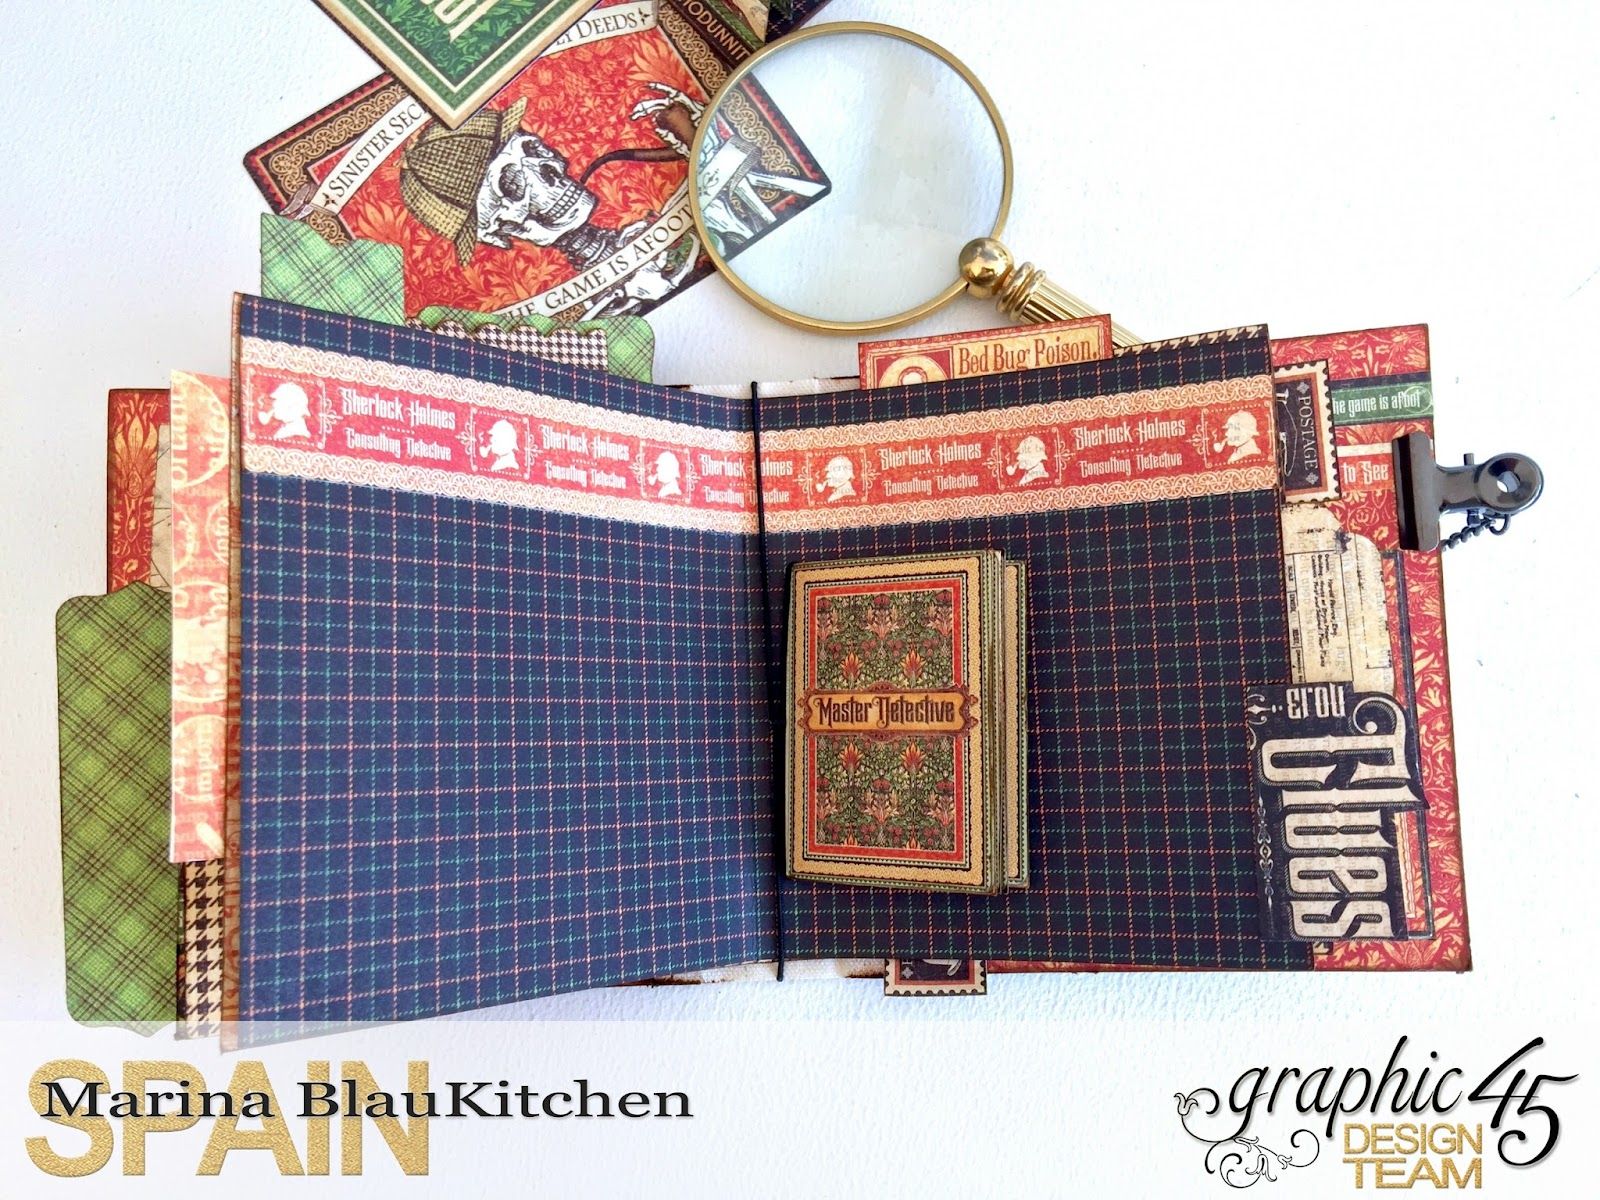 Stand and Mini Album Master Detective by Marina Blaukitchen Product by Graphic 45 photo 19.jpg